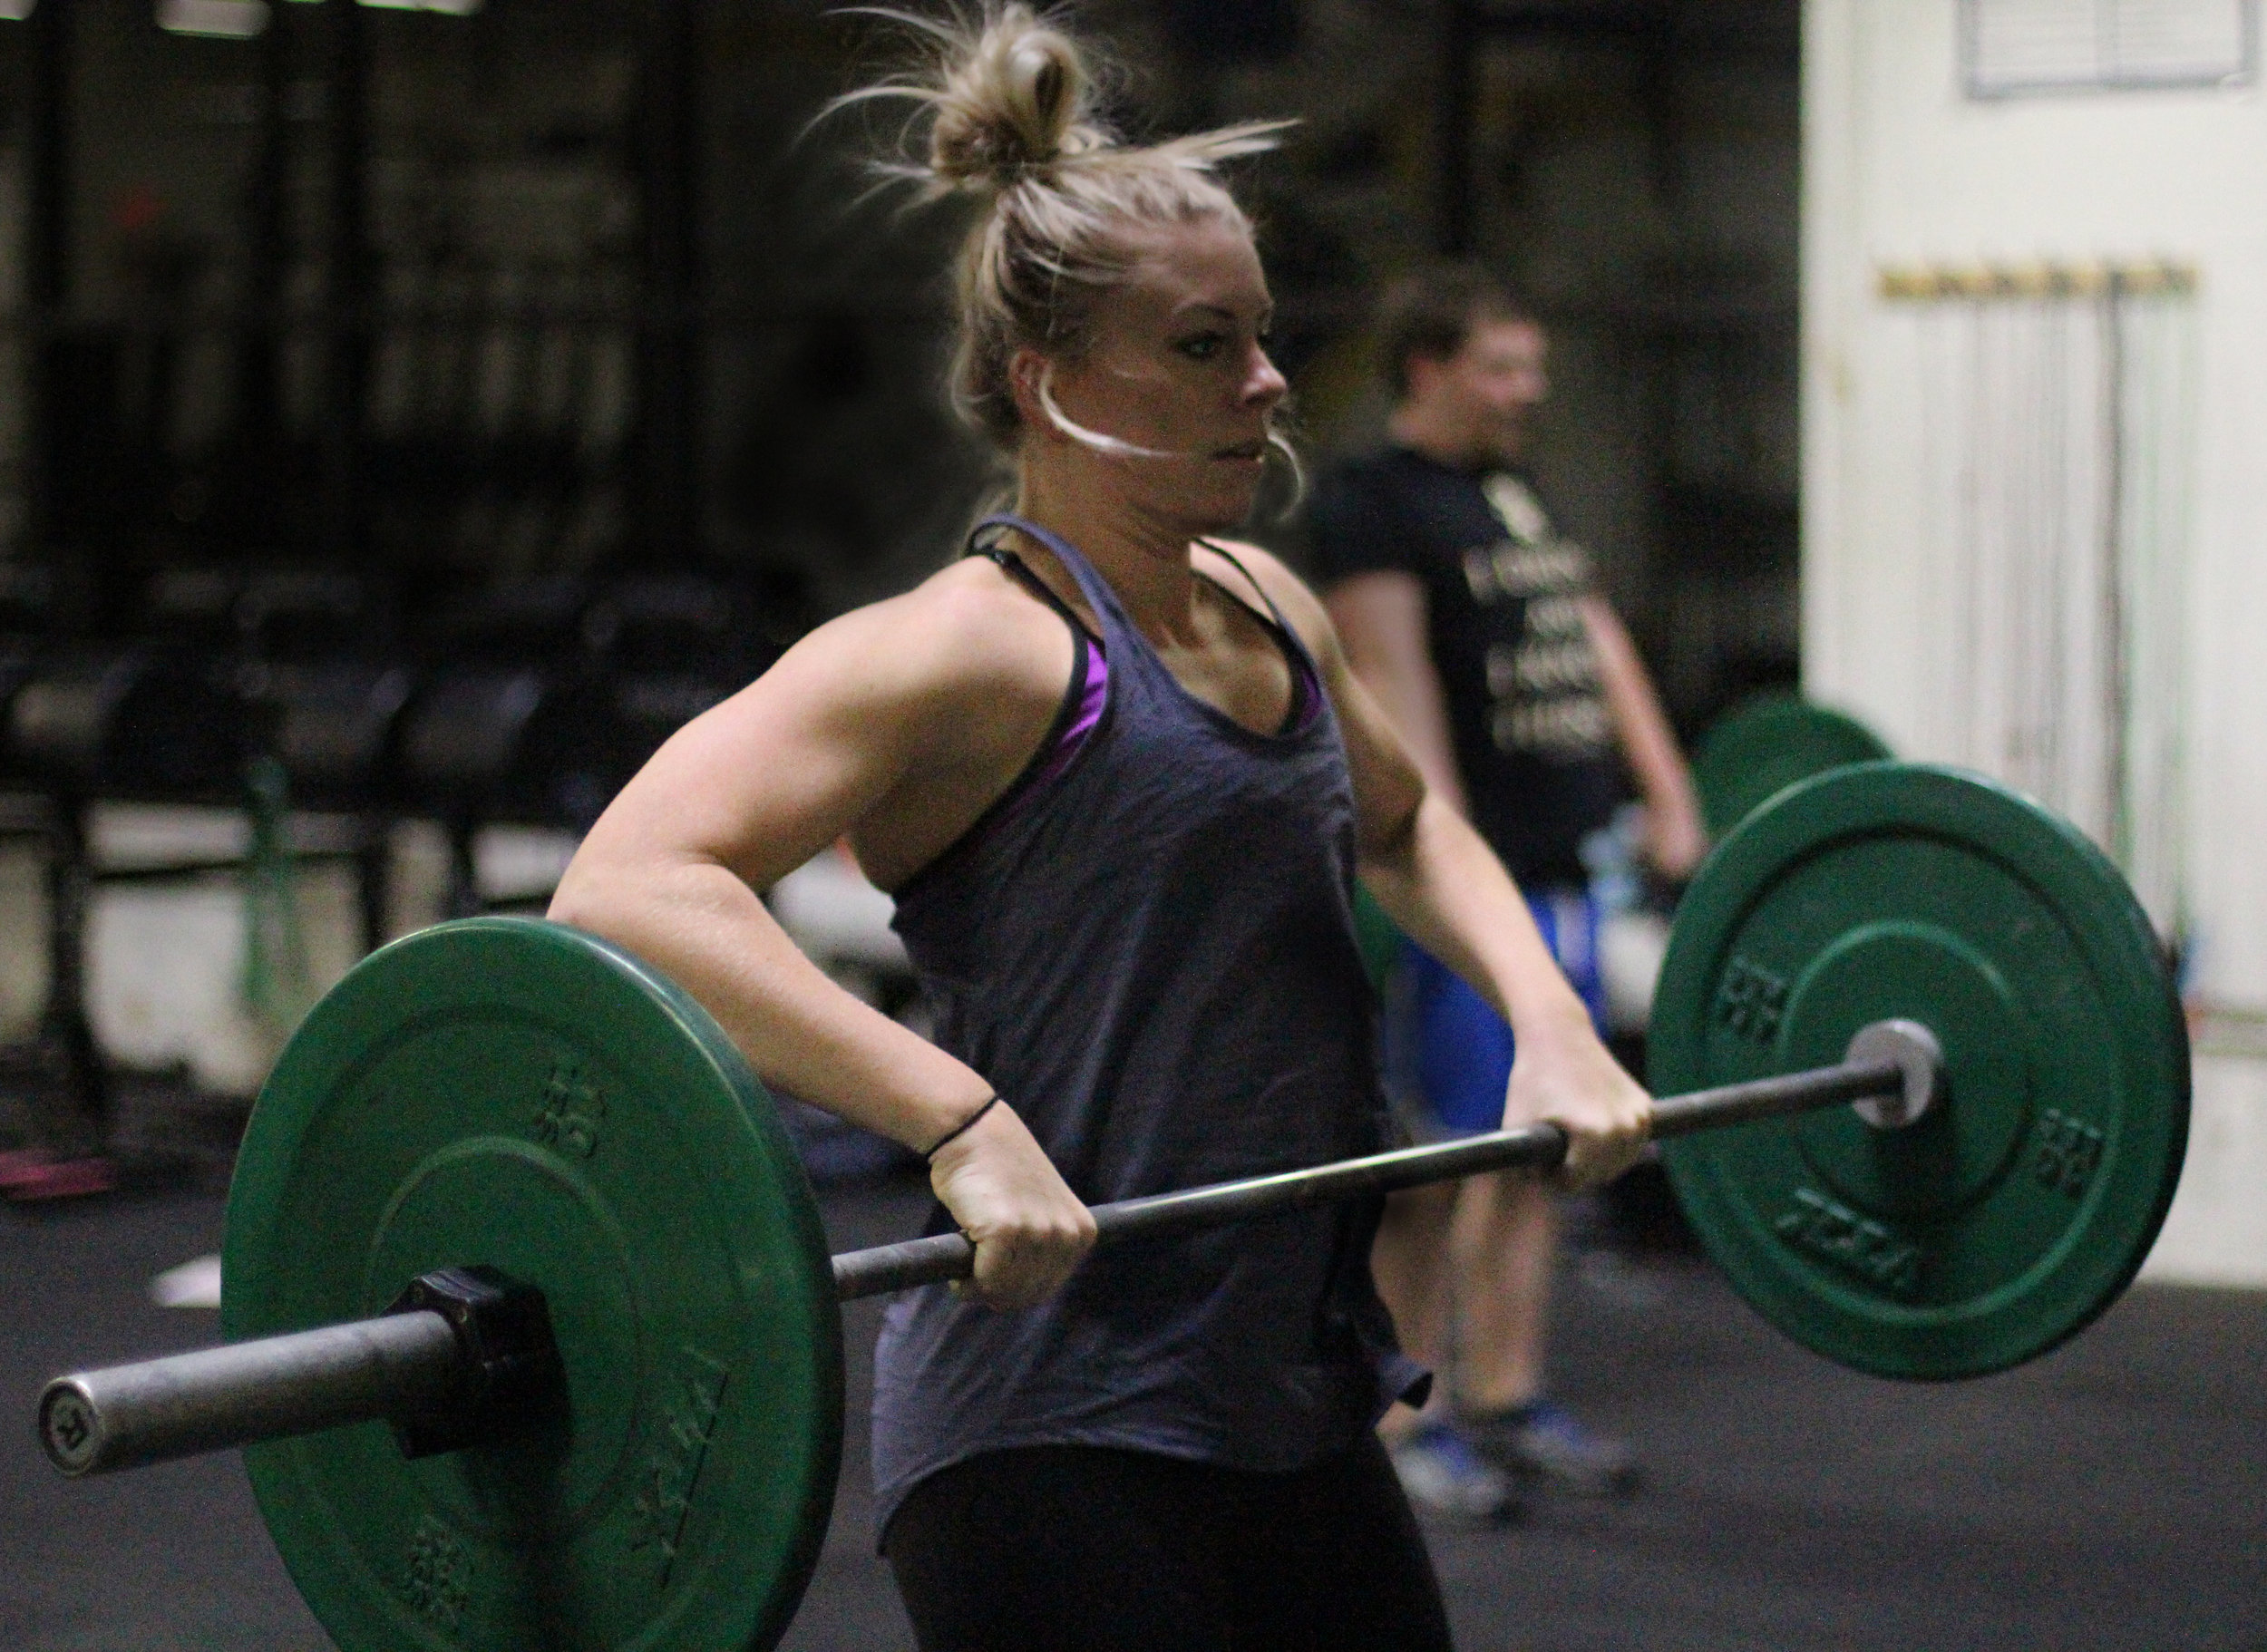 Here's PVCF athlete,Courtney Szawlowski pulling the barbell on her two month anniversary of CrossFit training!